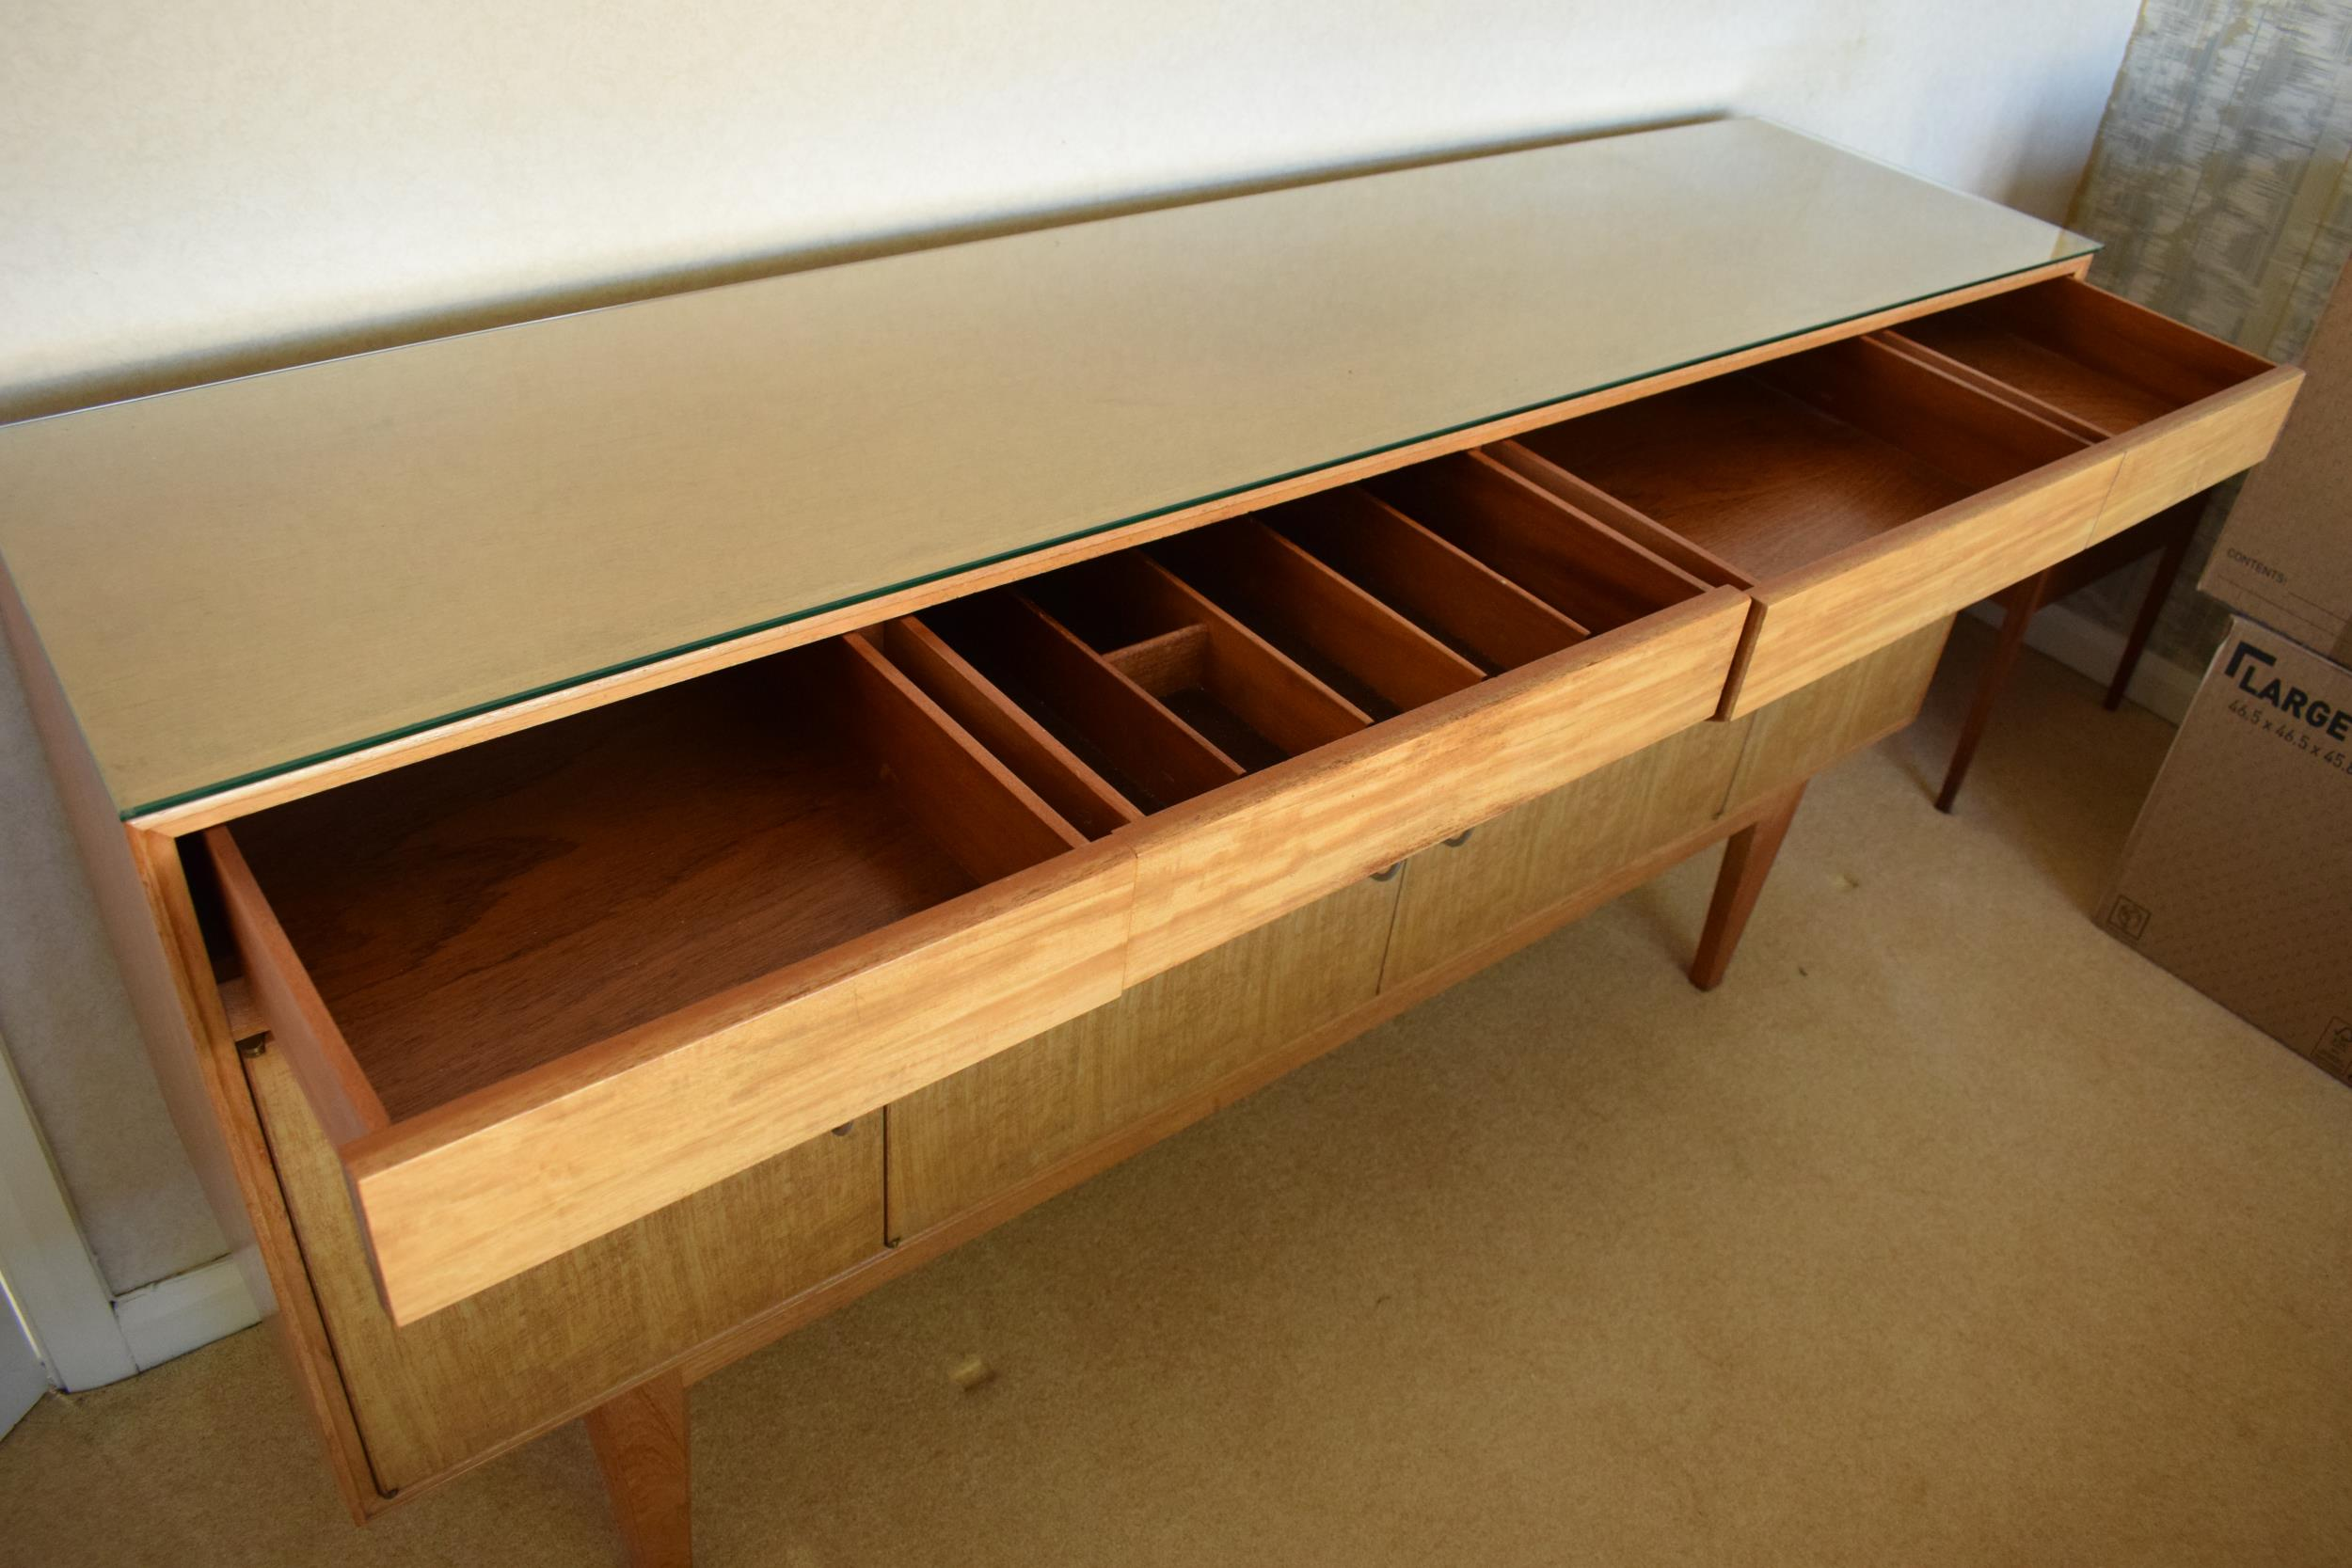 Gordon Rusell Limited four-door mid-century / retro sideboard on tapered legs with 4 drawers too. - Image 4 of 8